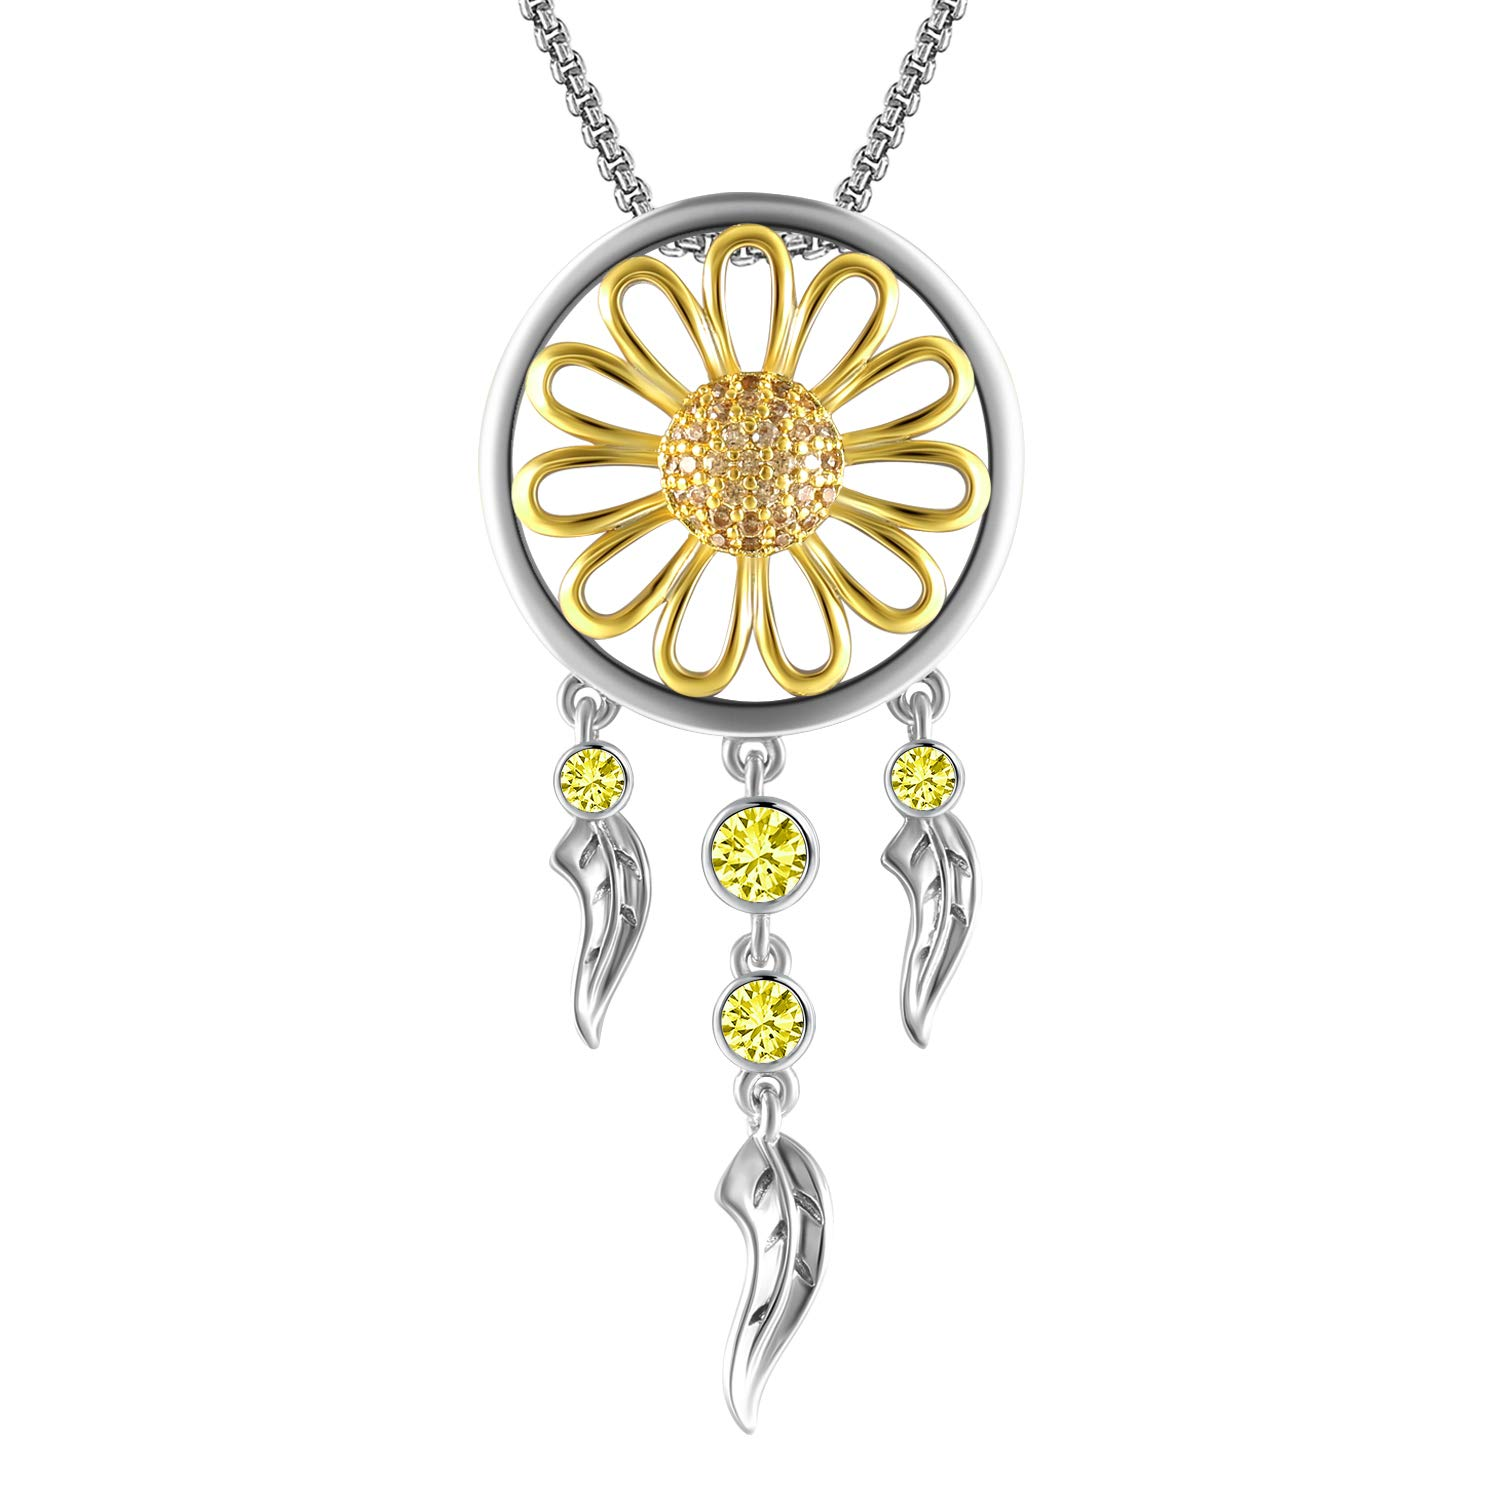 THEHORAE Yellow Gold Sunflower Pendant Necklace for Women Dream Catcher Necklace Jewellery Birthday Gift for Her